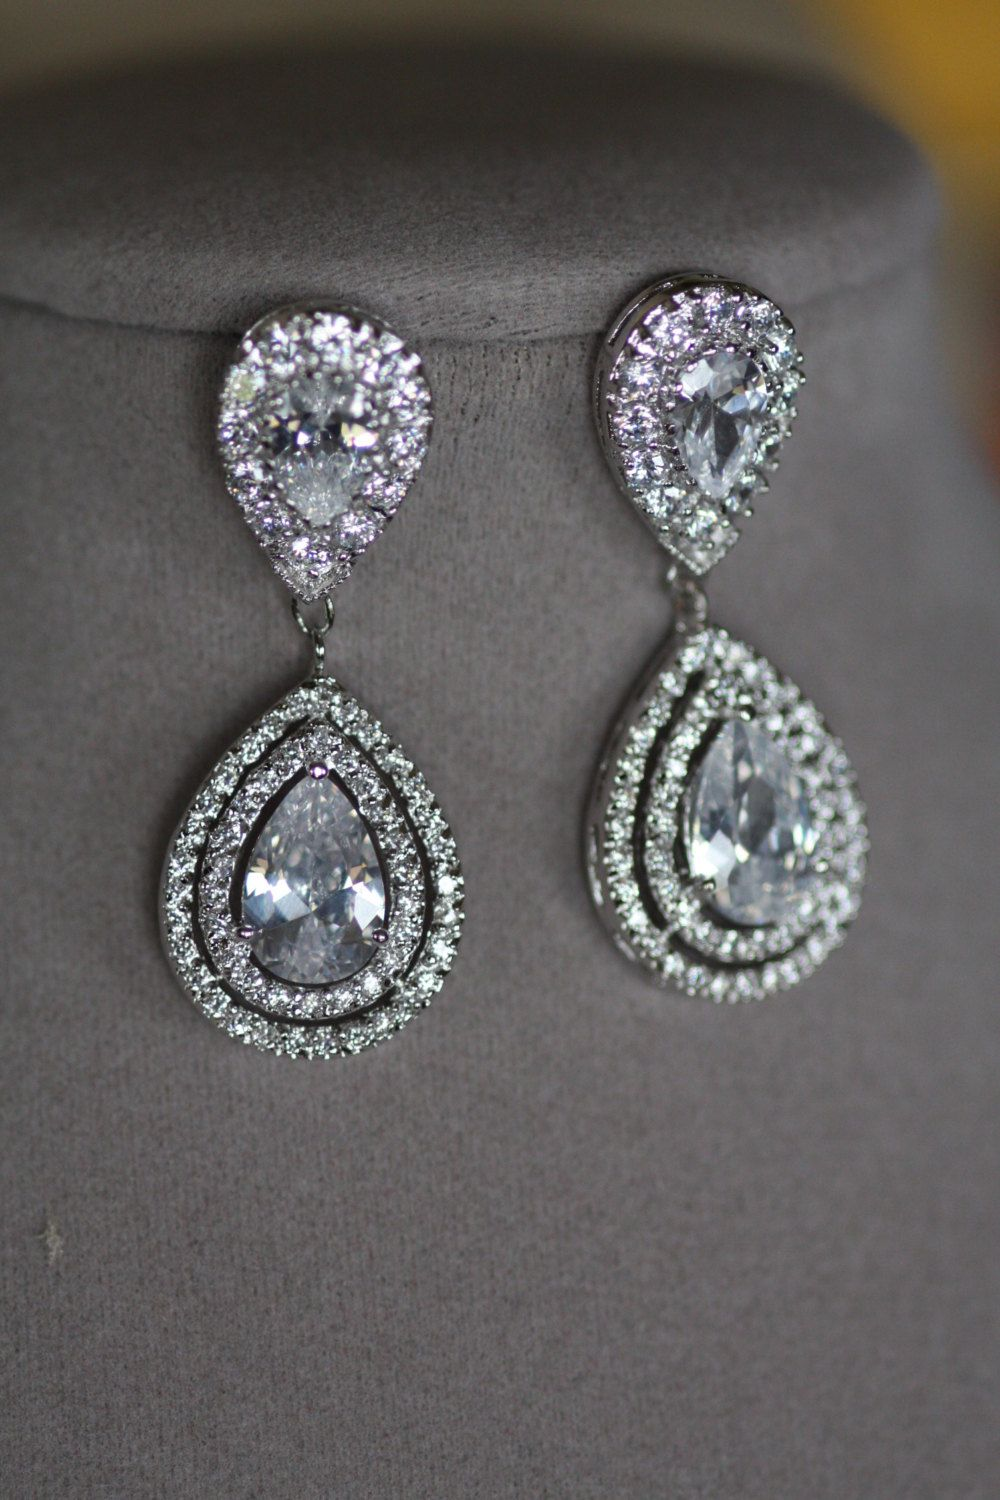 Bridal Clip On Earrings Wedding Swarovski Crystal Chandelier Drop Kim Kardashian Cubic Zirconia Statement